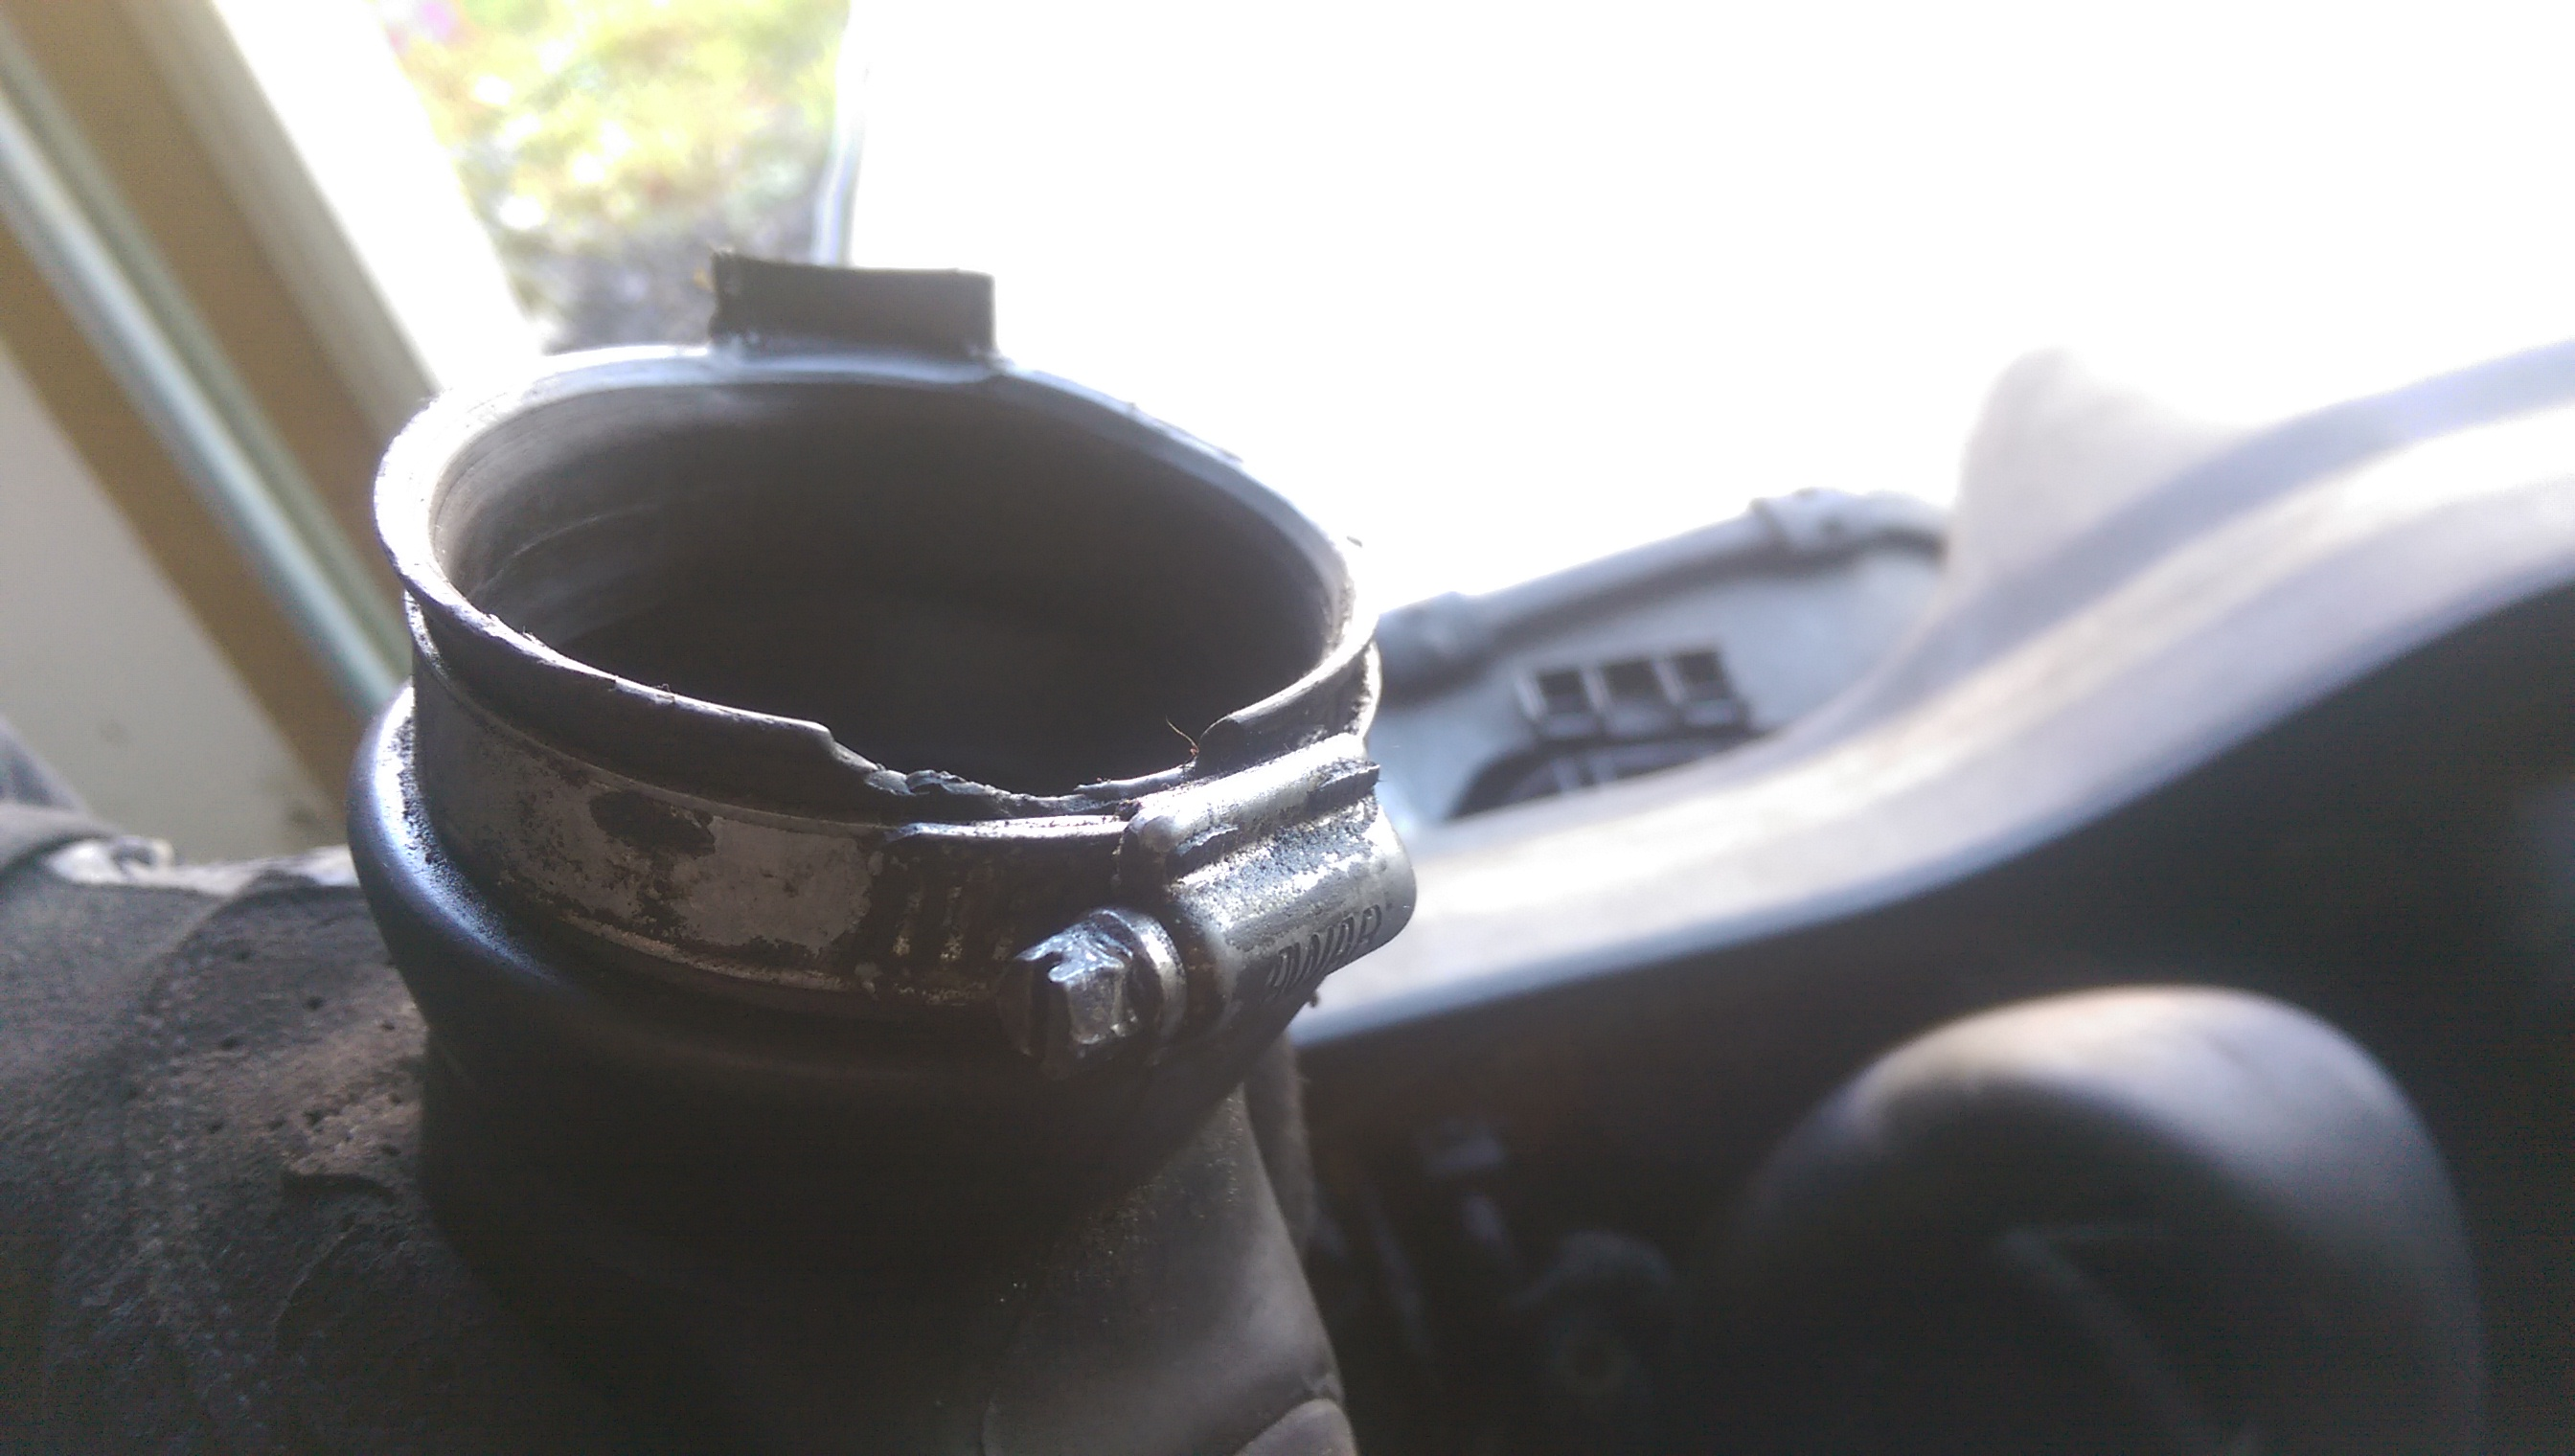 1998 V70 R AWD Whistle/whine on acceleration- need opinions